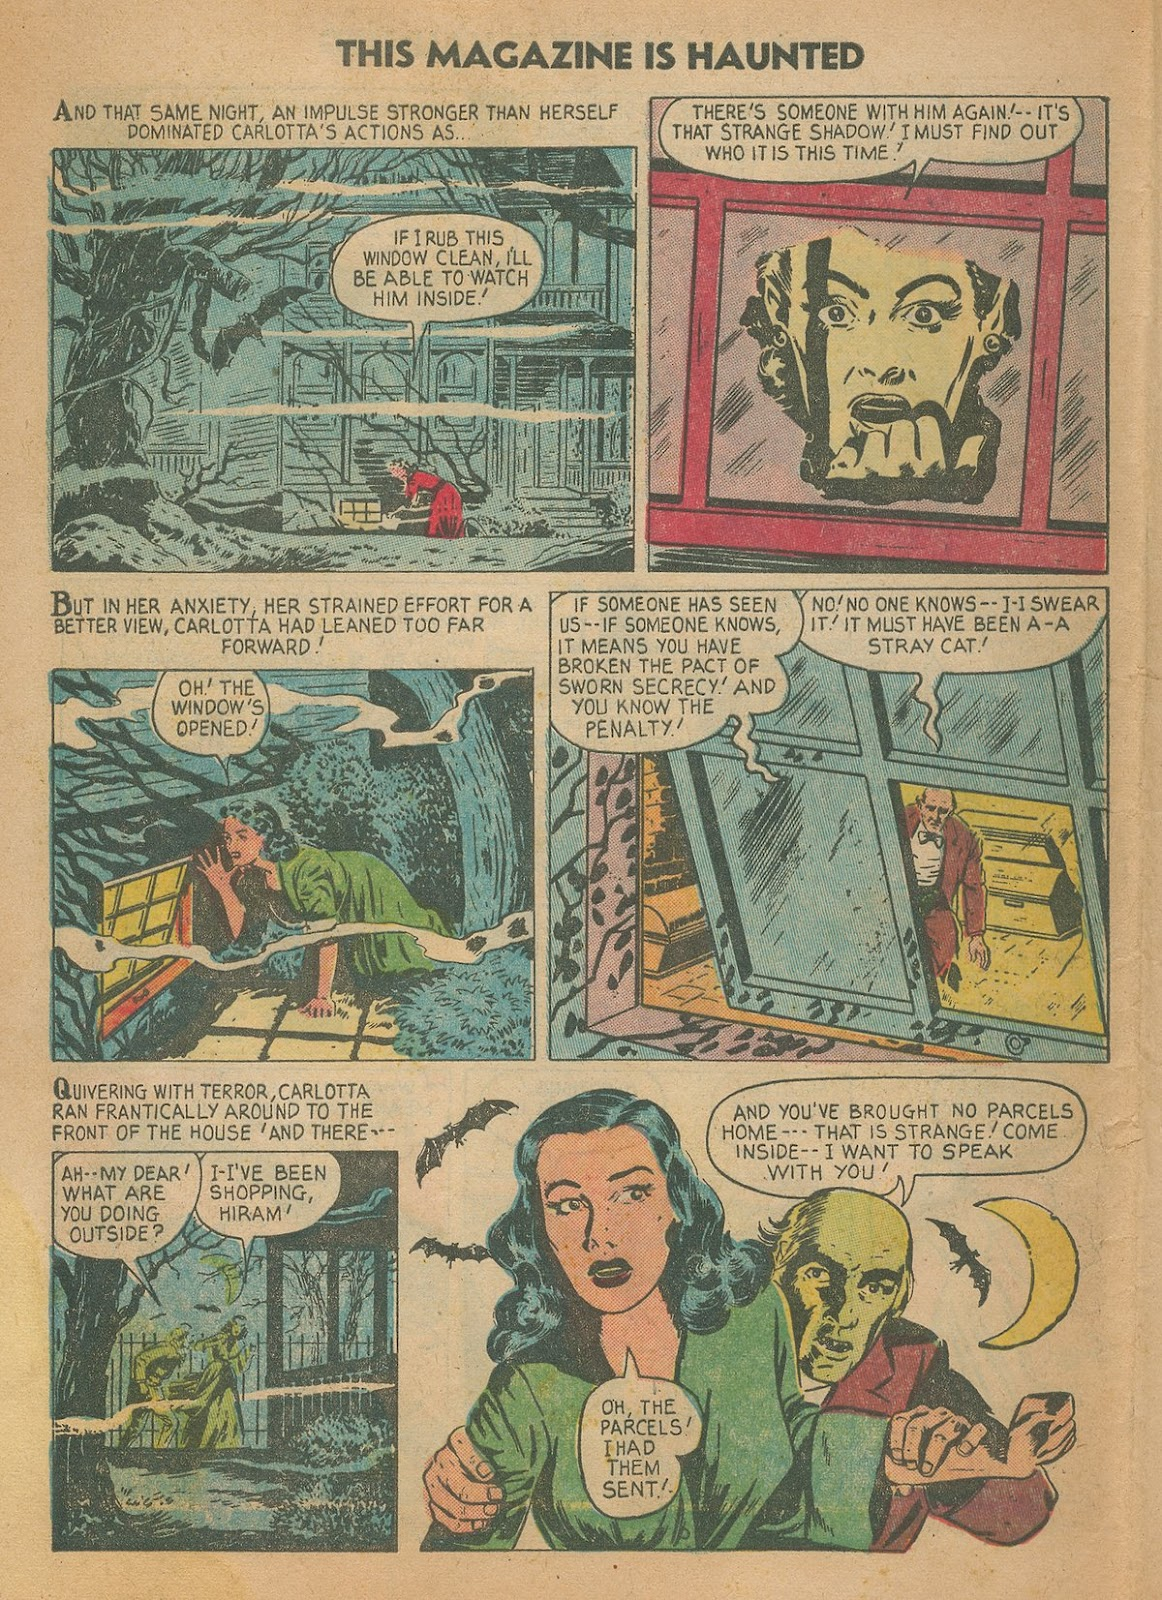 Read online This Magazine Is Haunted comic -  Issue #19 - 28